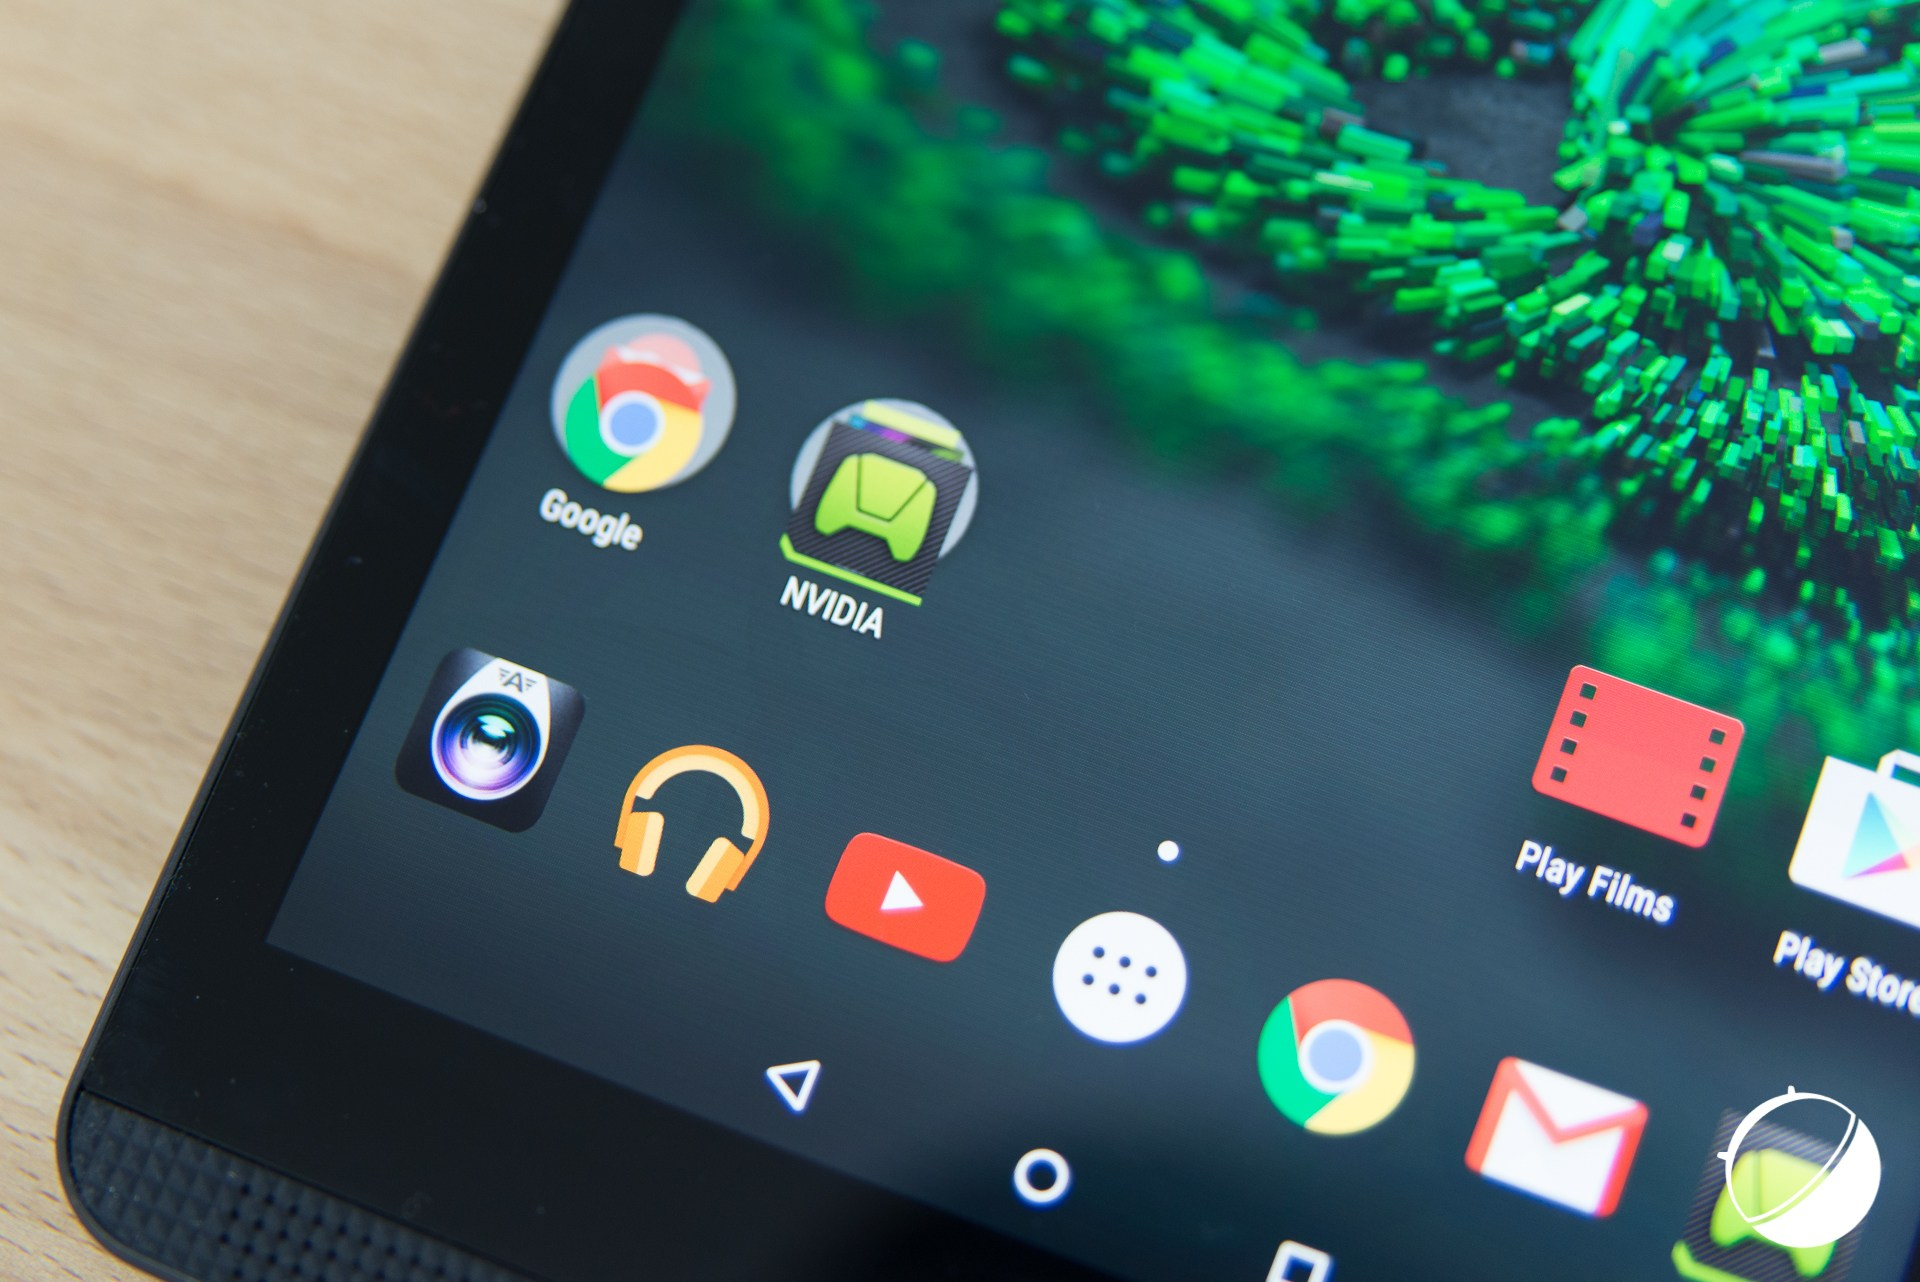 La Nvidia Shield Tablet se montre sous Android 6.0 Marshmallow